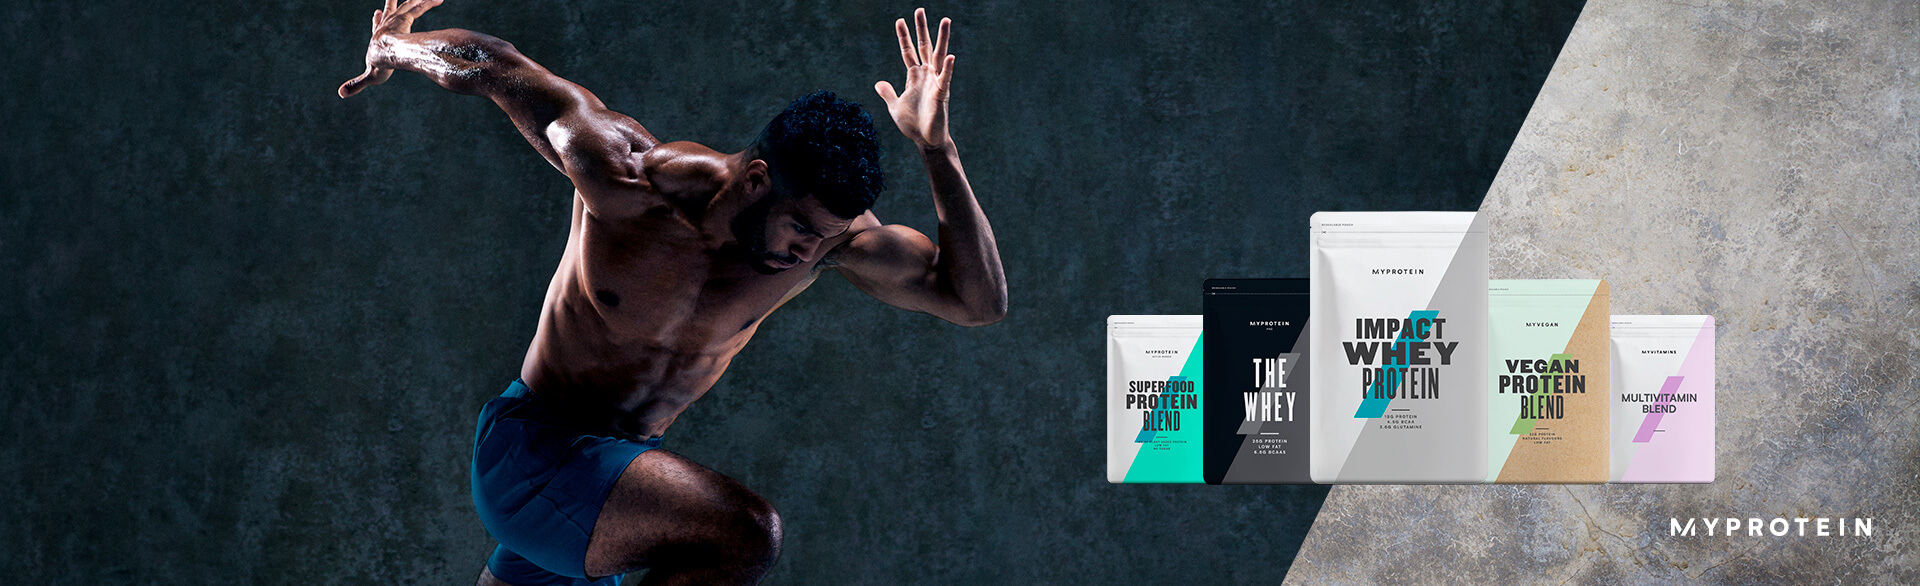 protein shakes and powders landing page banner